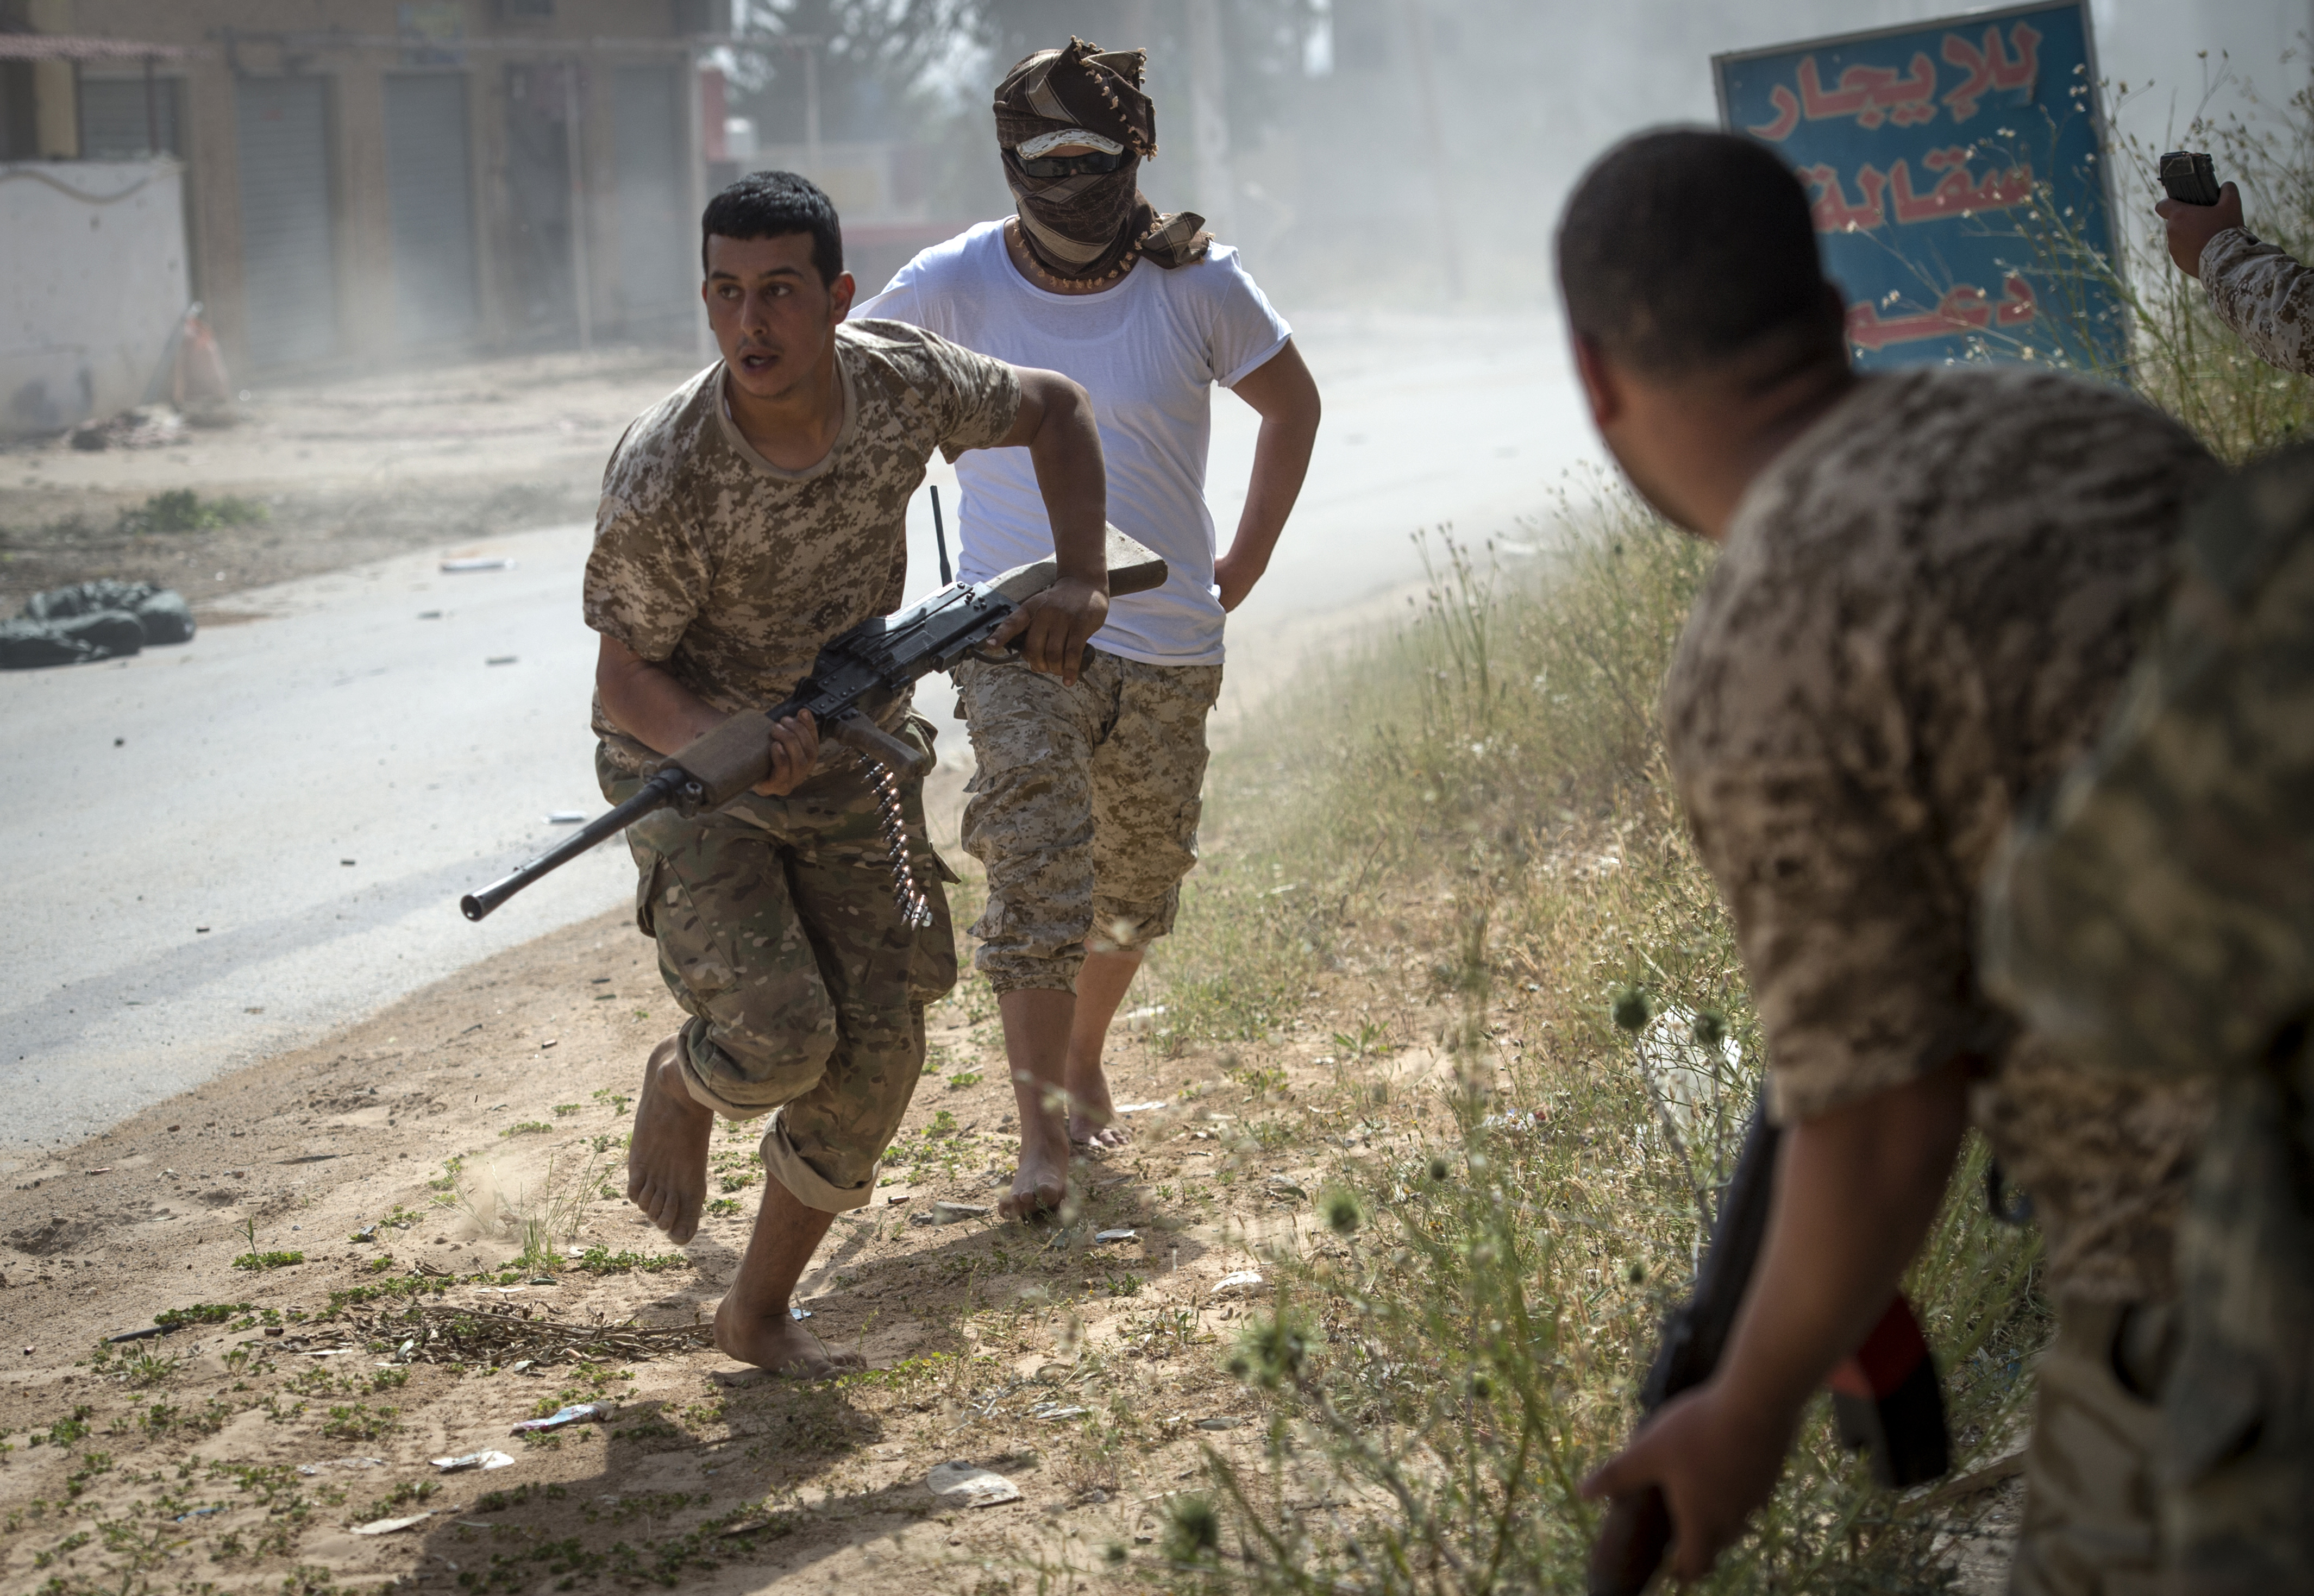 Fighters loyal to the internationally recognized Government of National Accord (GNA) run for cover during clashes with forces loyal to strongman Khalifa Haftar south of the capital Tripoli's suburb of Ain Zara, on April 25, 2019.